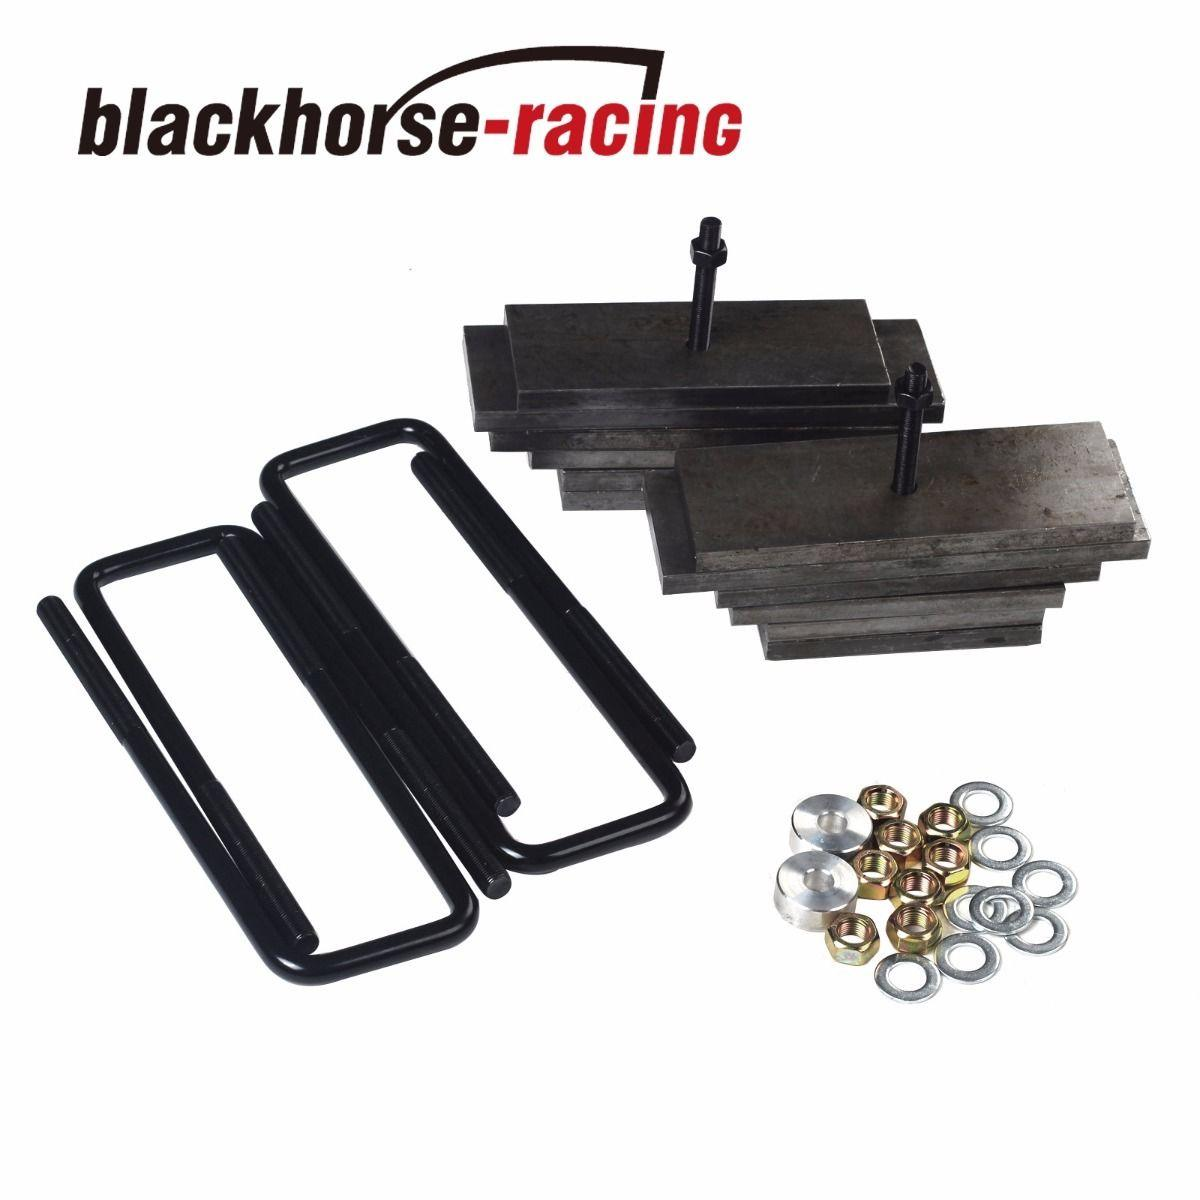 New 3''+ Front Leveling lift kit Fits For 1999-2005 FORD F250 Superduty 4x4